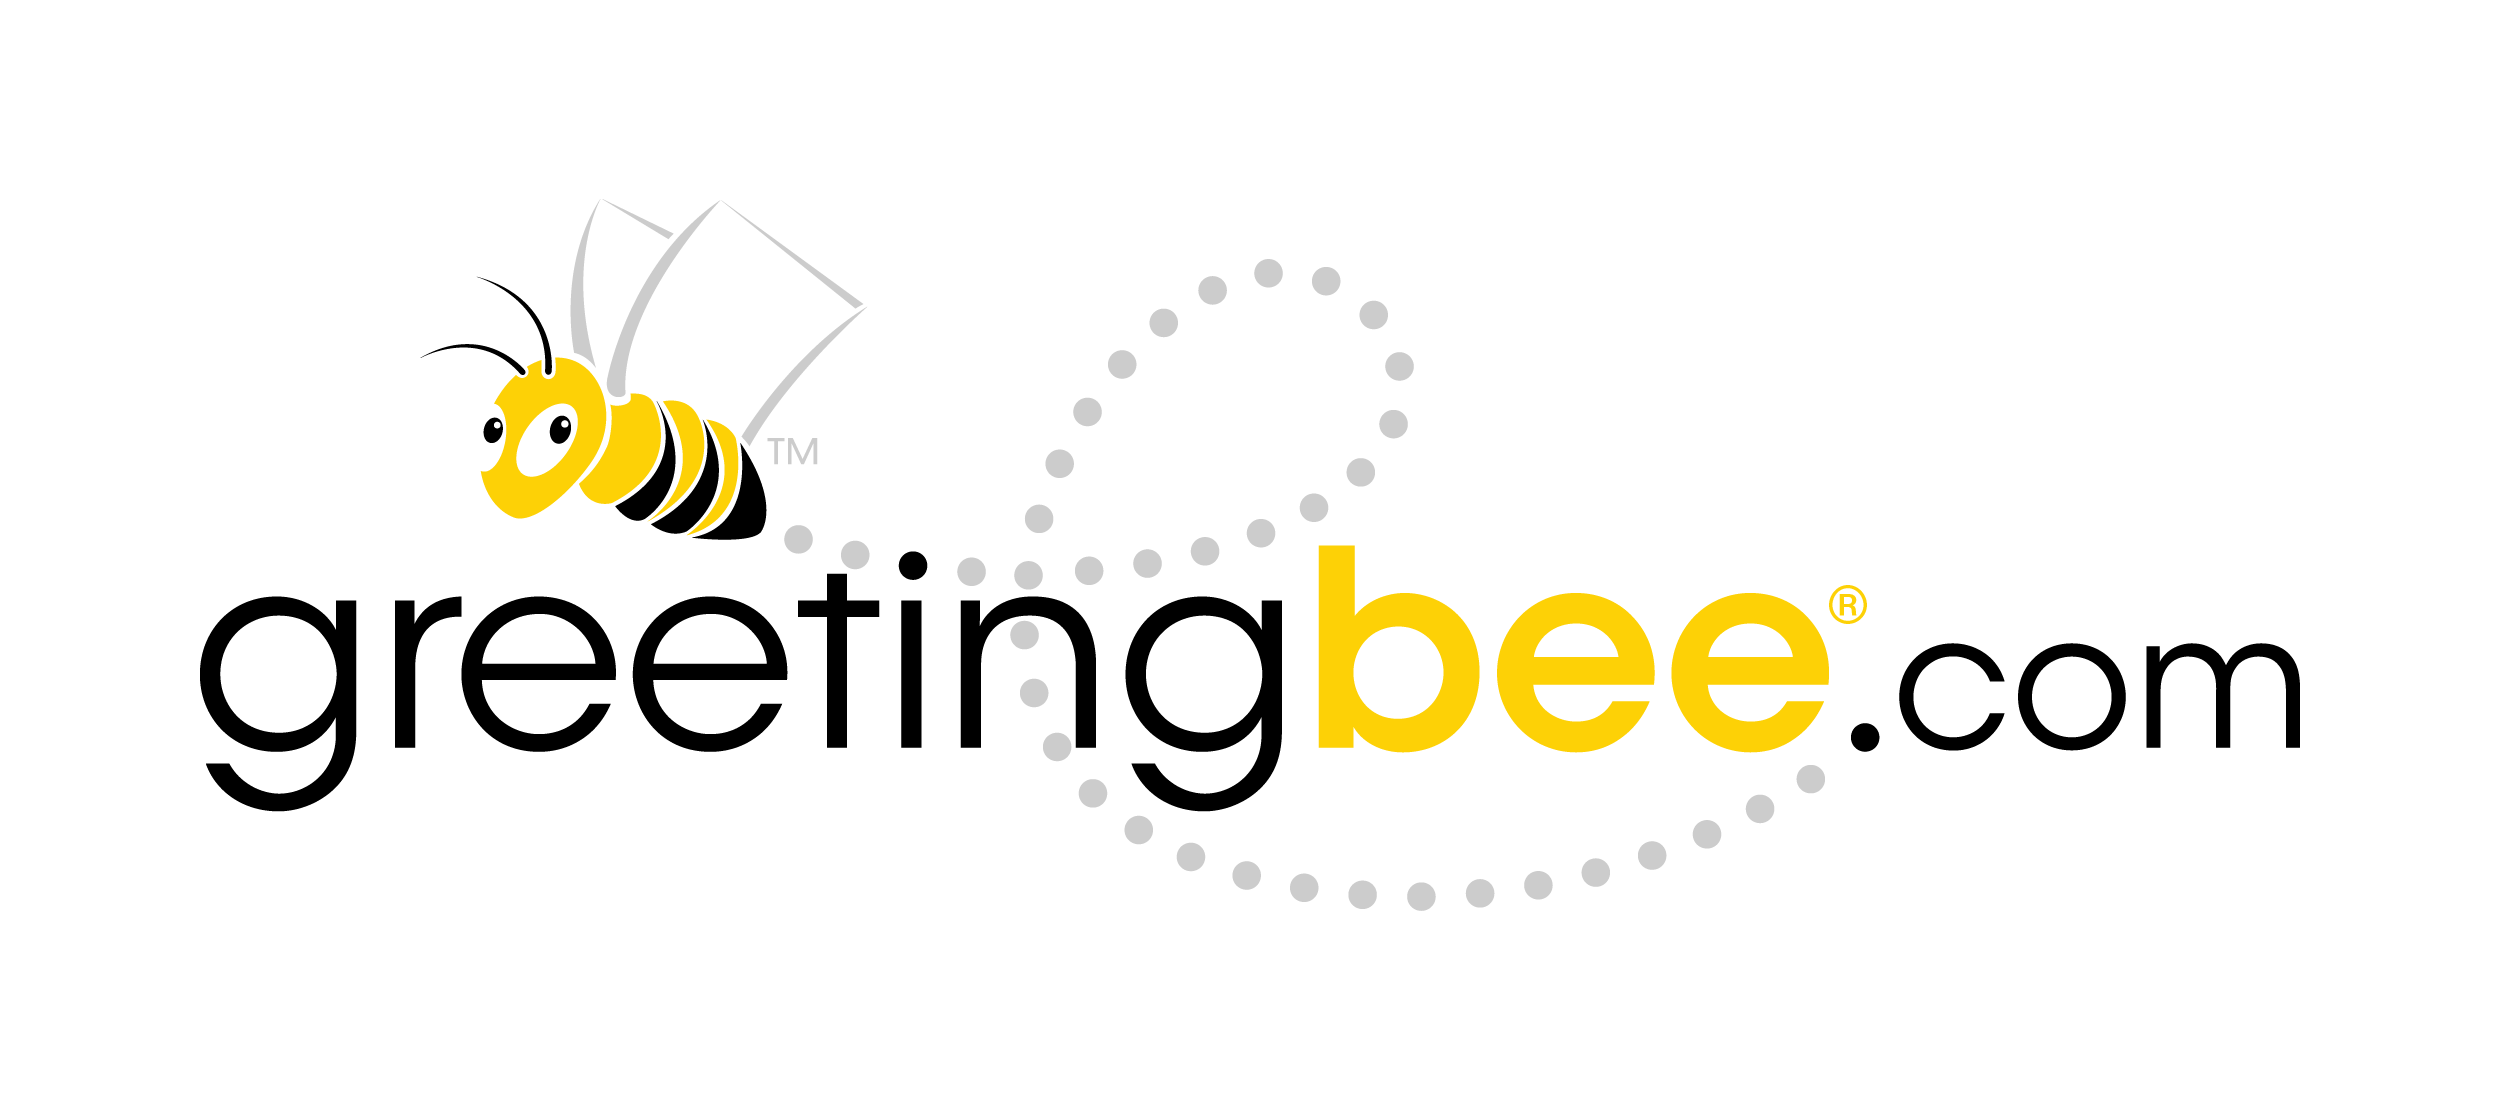 Instantly create custom printable greeting cards and gift cards with greetingbee printable cards greetingbee logogreetingbeelogo m4hsunfo